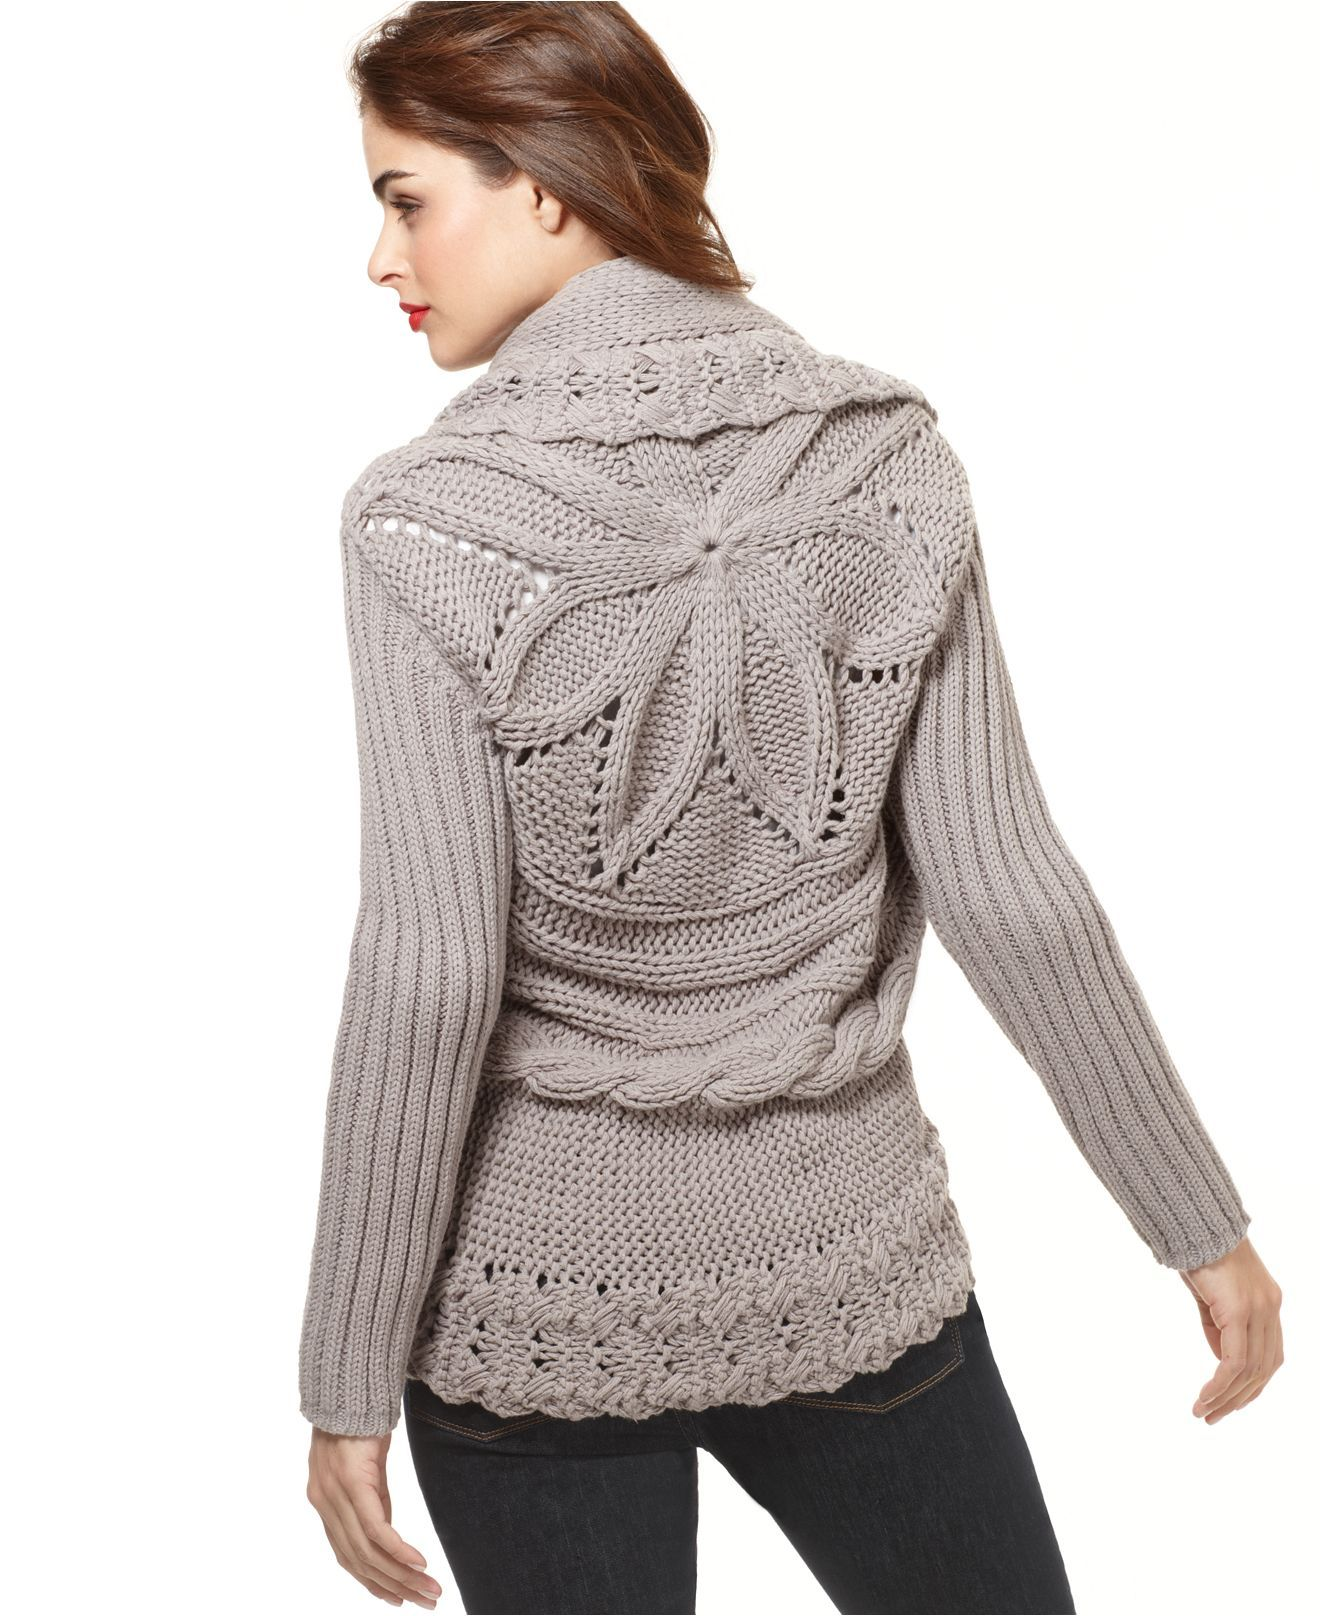 Latest Winter Top Stylish Sweater Online Shopping For Girls